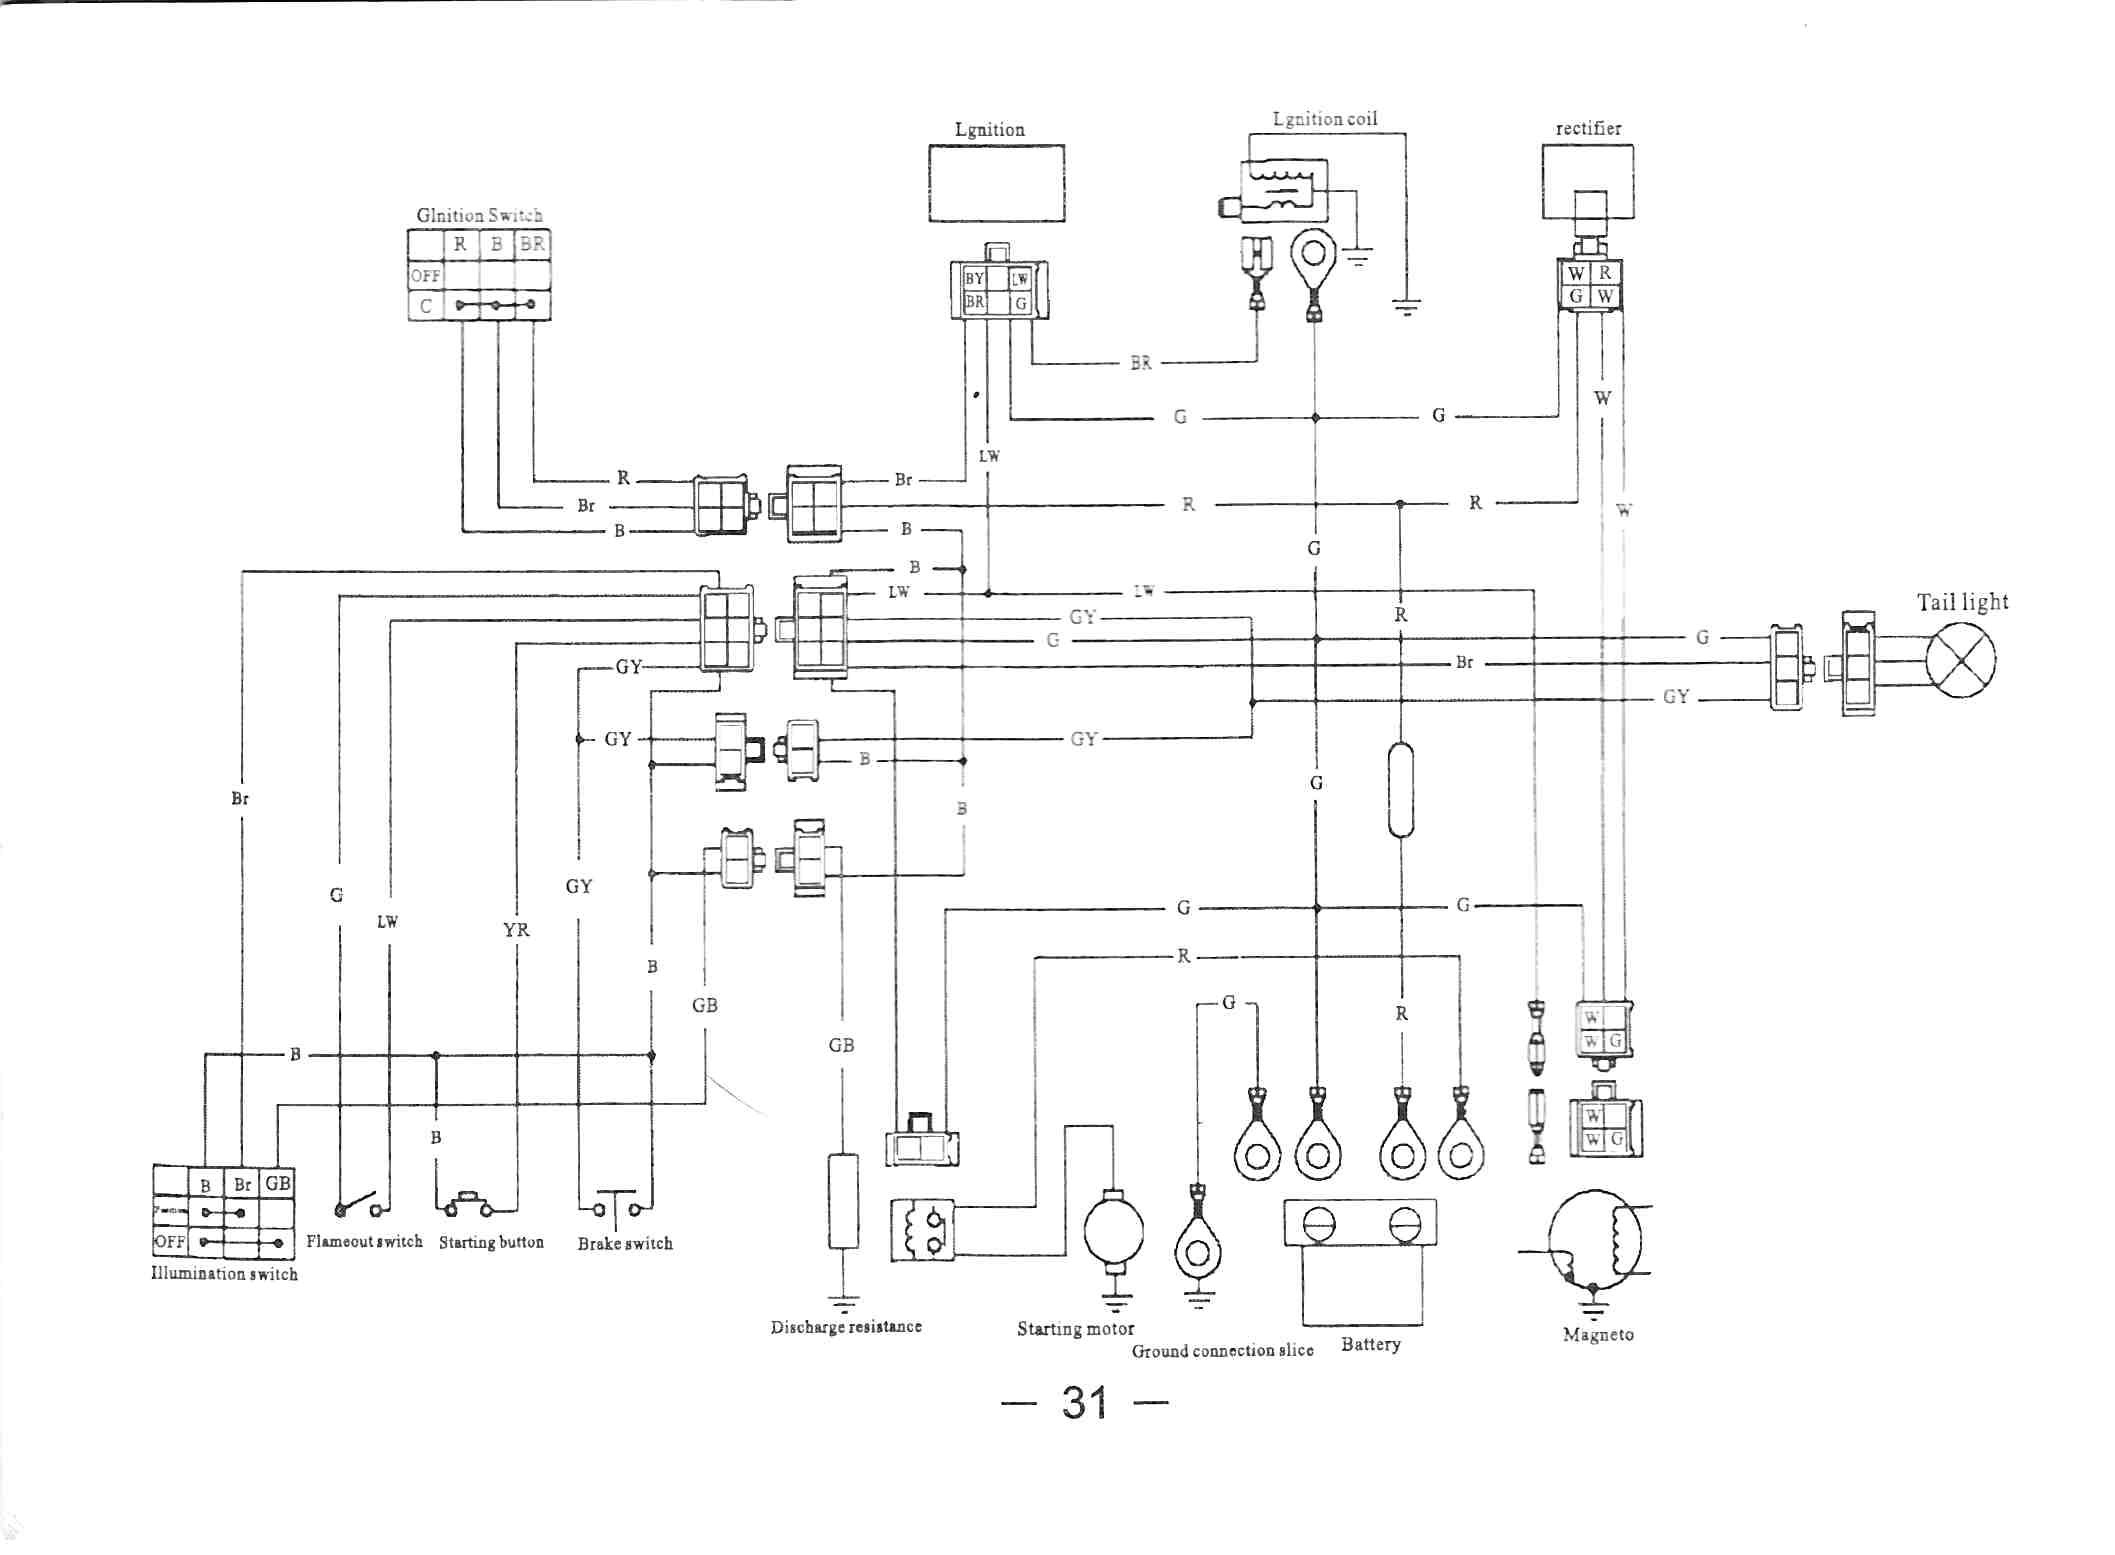 2007 110cc atv wiring diagram wiring diagram 50cc scooter wiring diagram marshin atv 250 wiring diagram #15